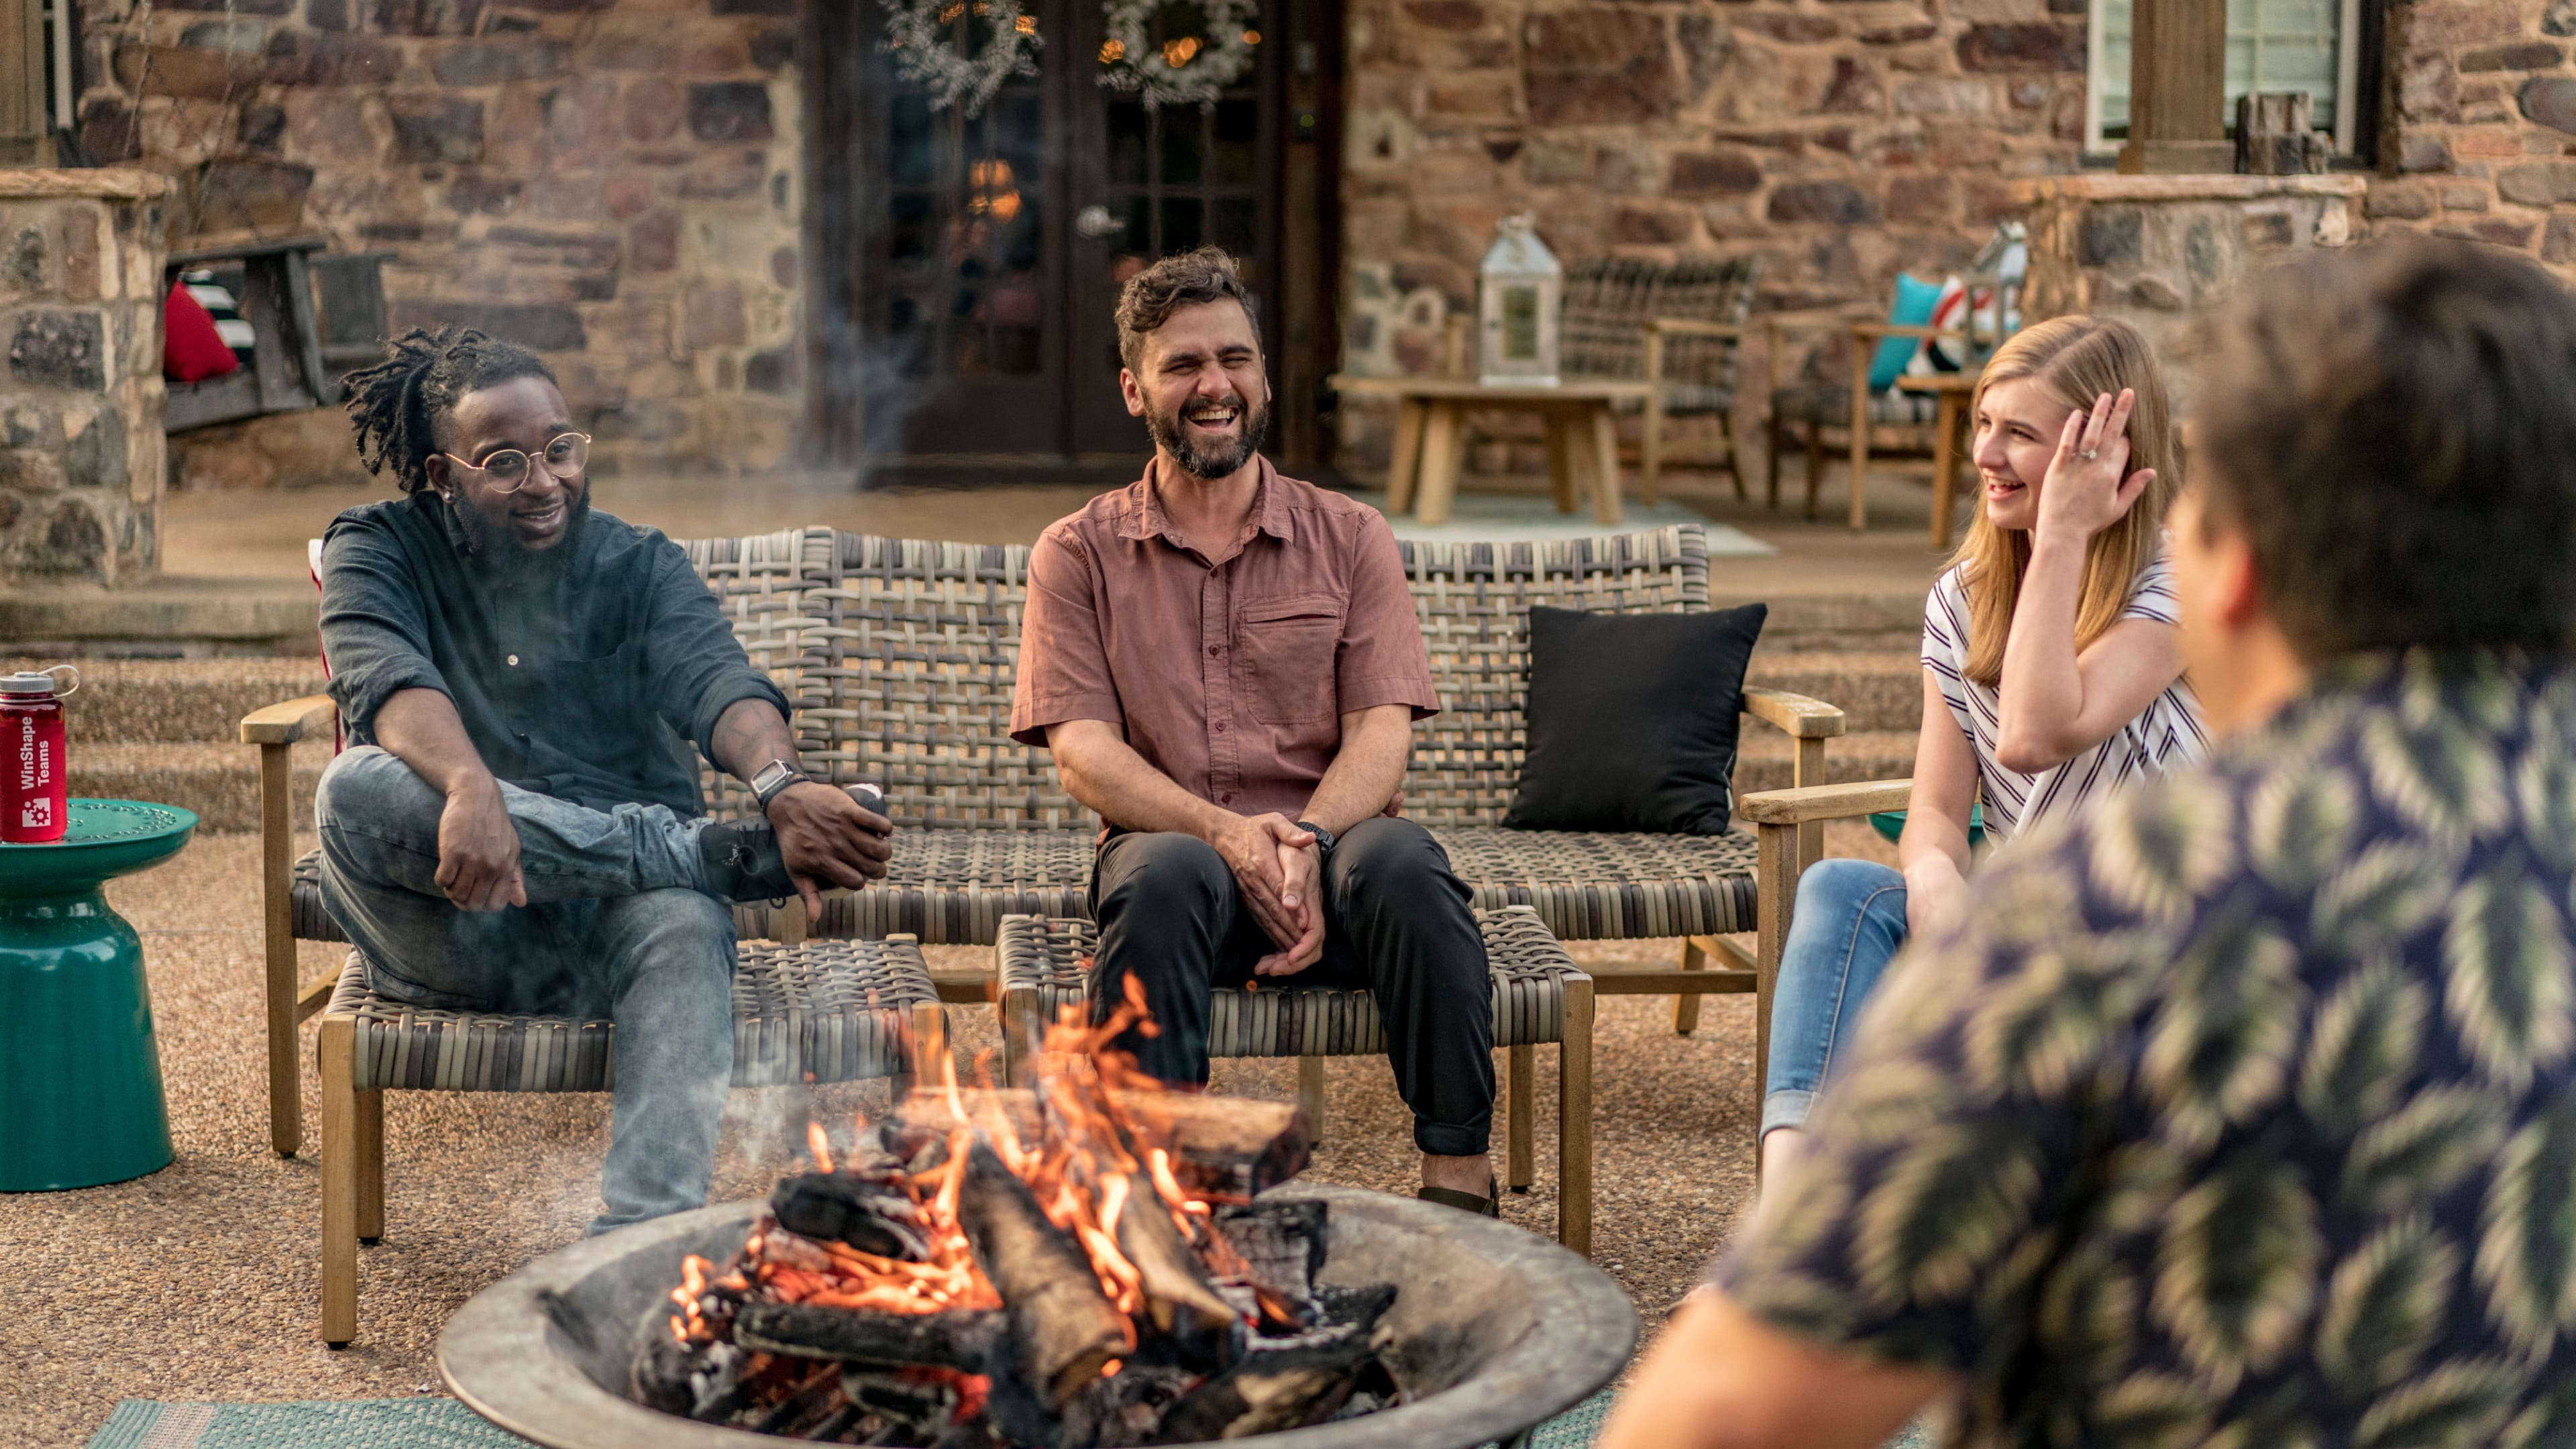 At a Winshape gathering, a group of attendees chat while gathered around a fire.